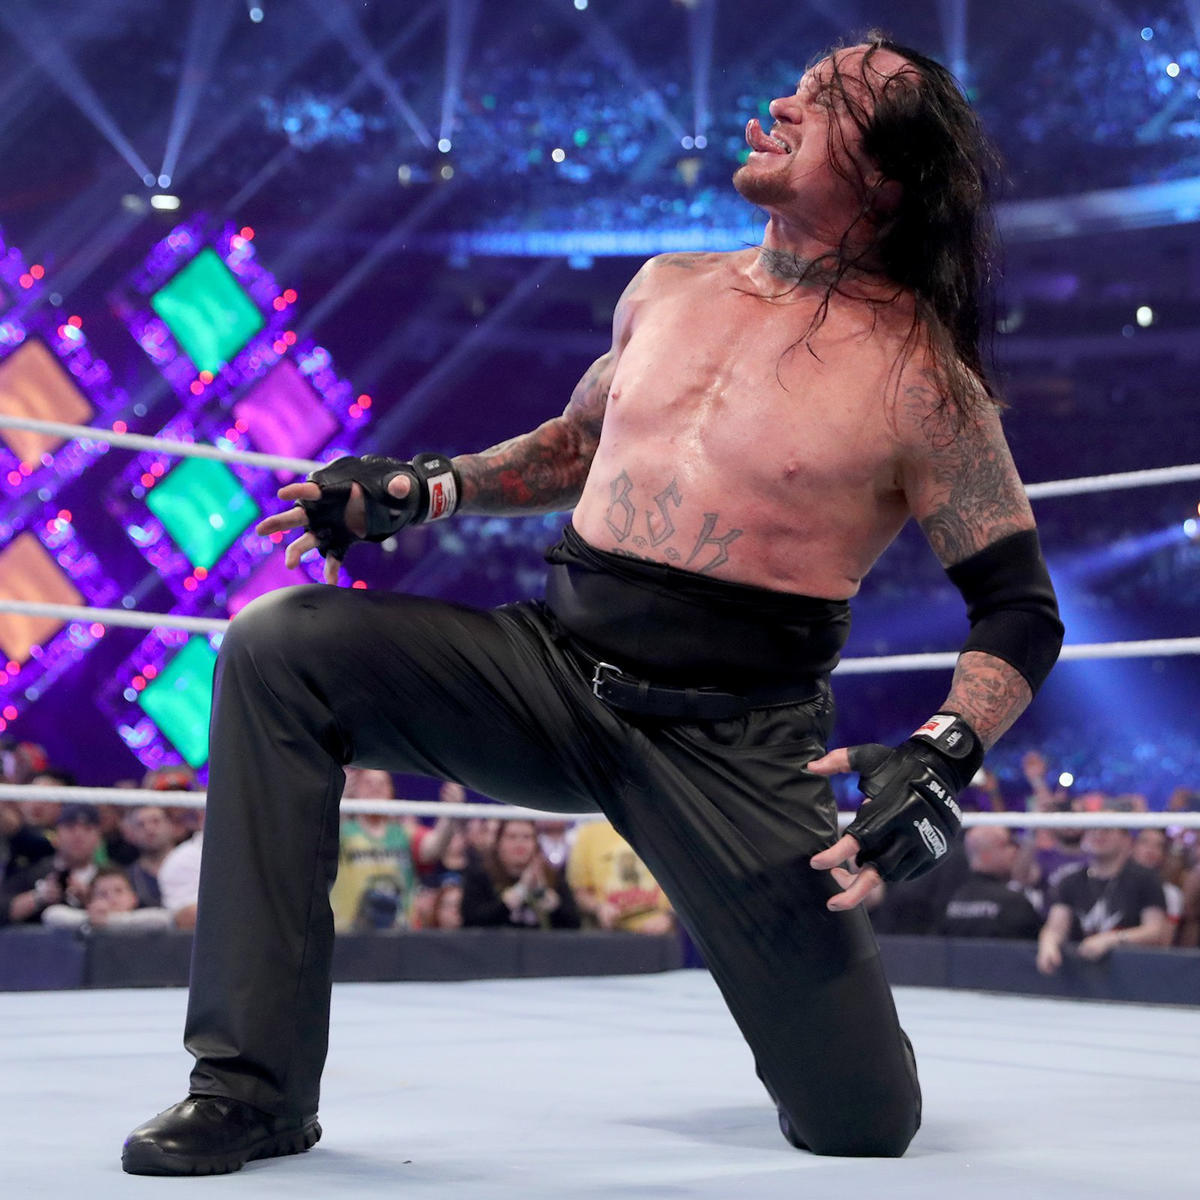 The Deadman defeats Cena on The Grandest Stage of Them All.